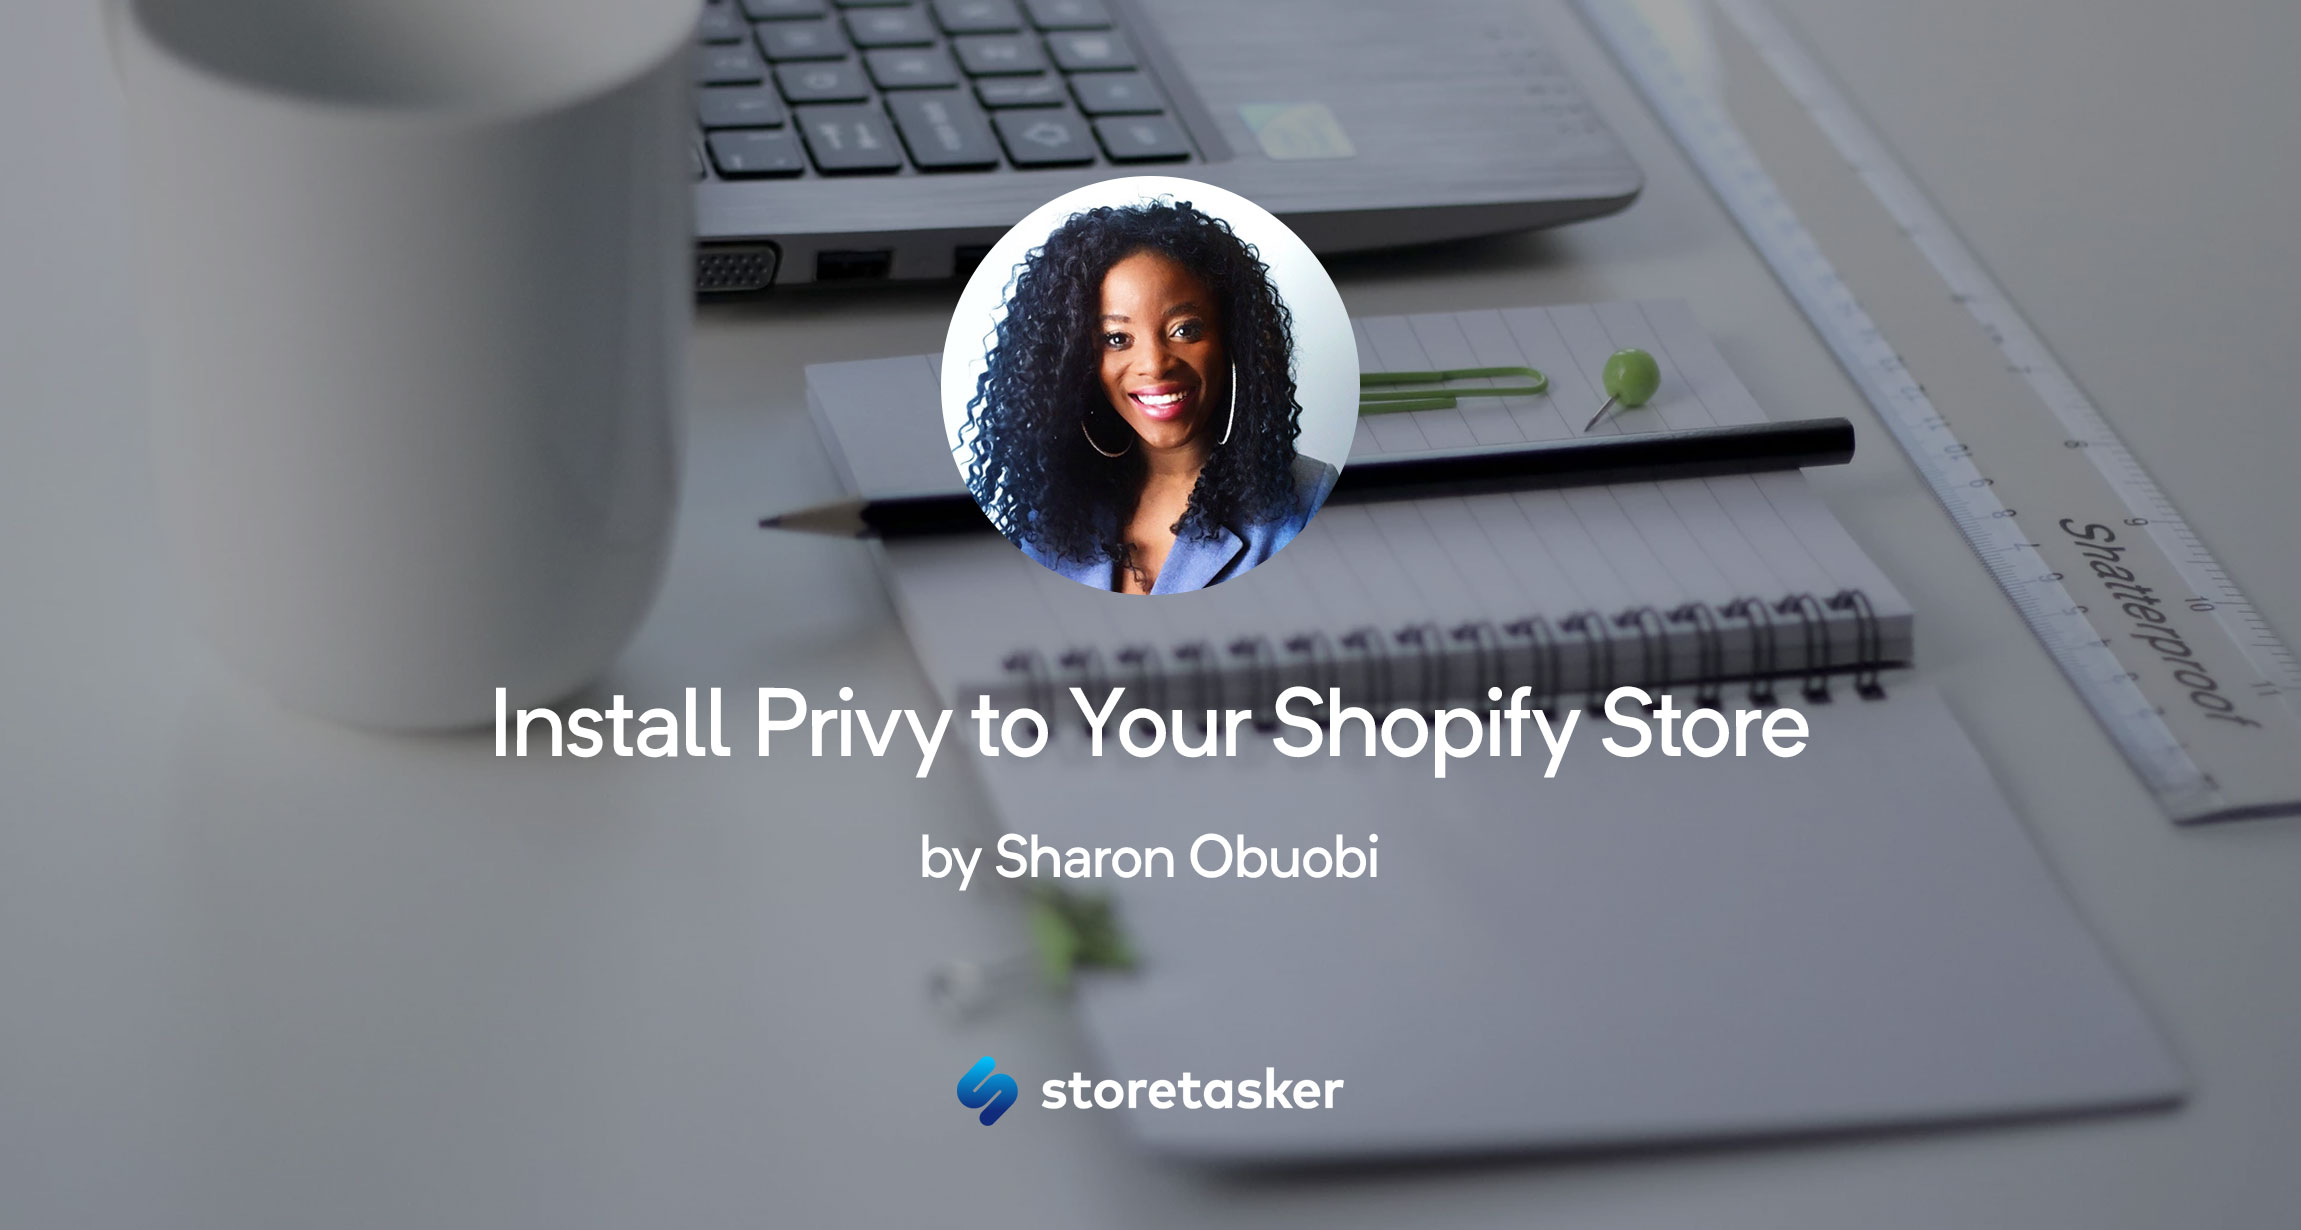 Install Privy to Your Shopify Store